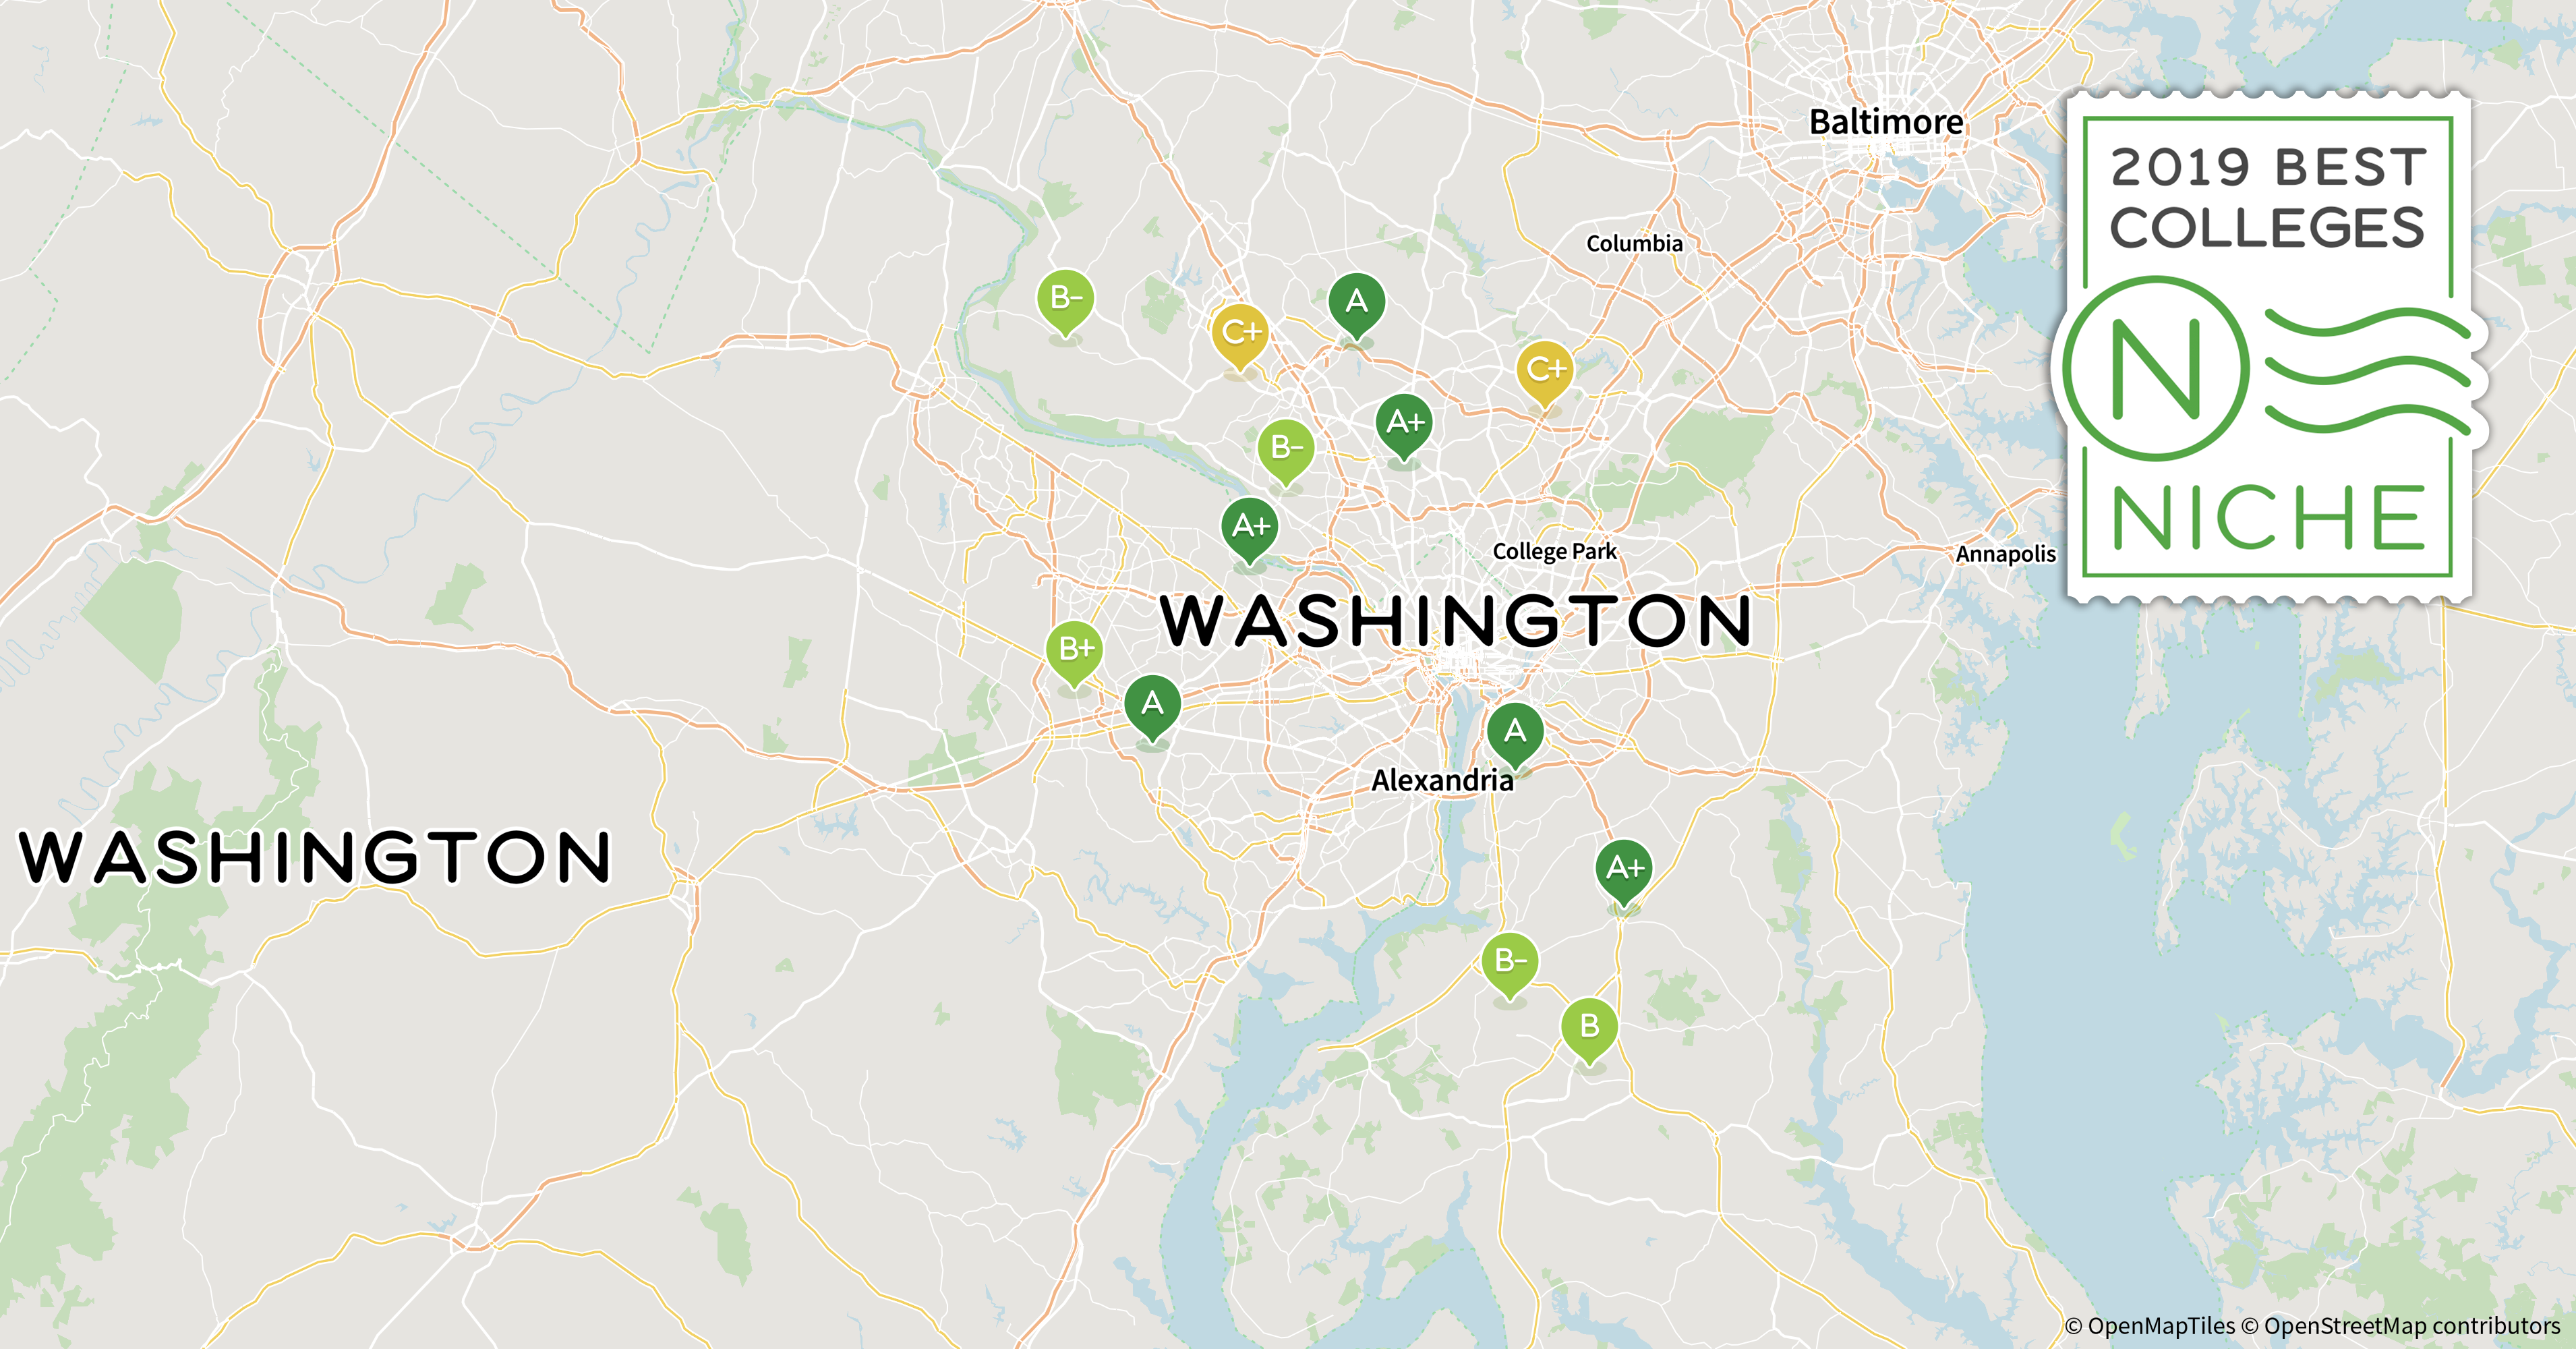 2019 Best Colleges in Washington, D.C. Area - Niche